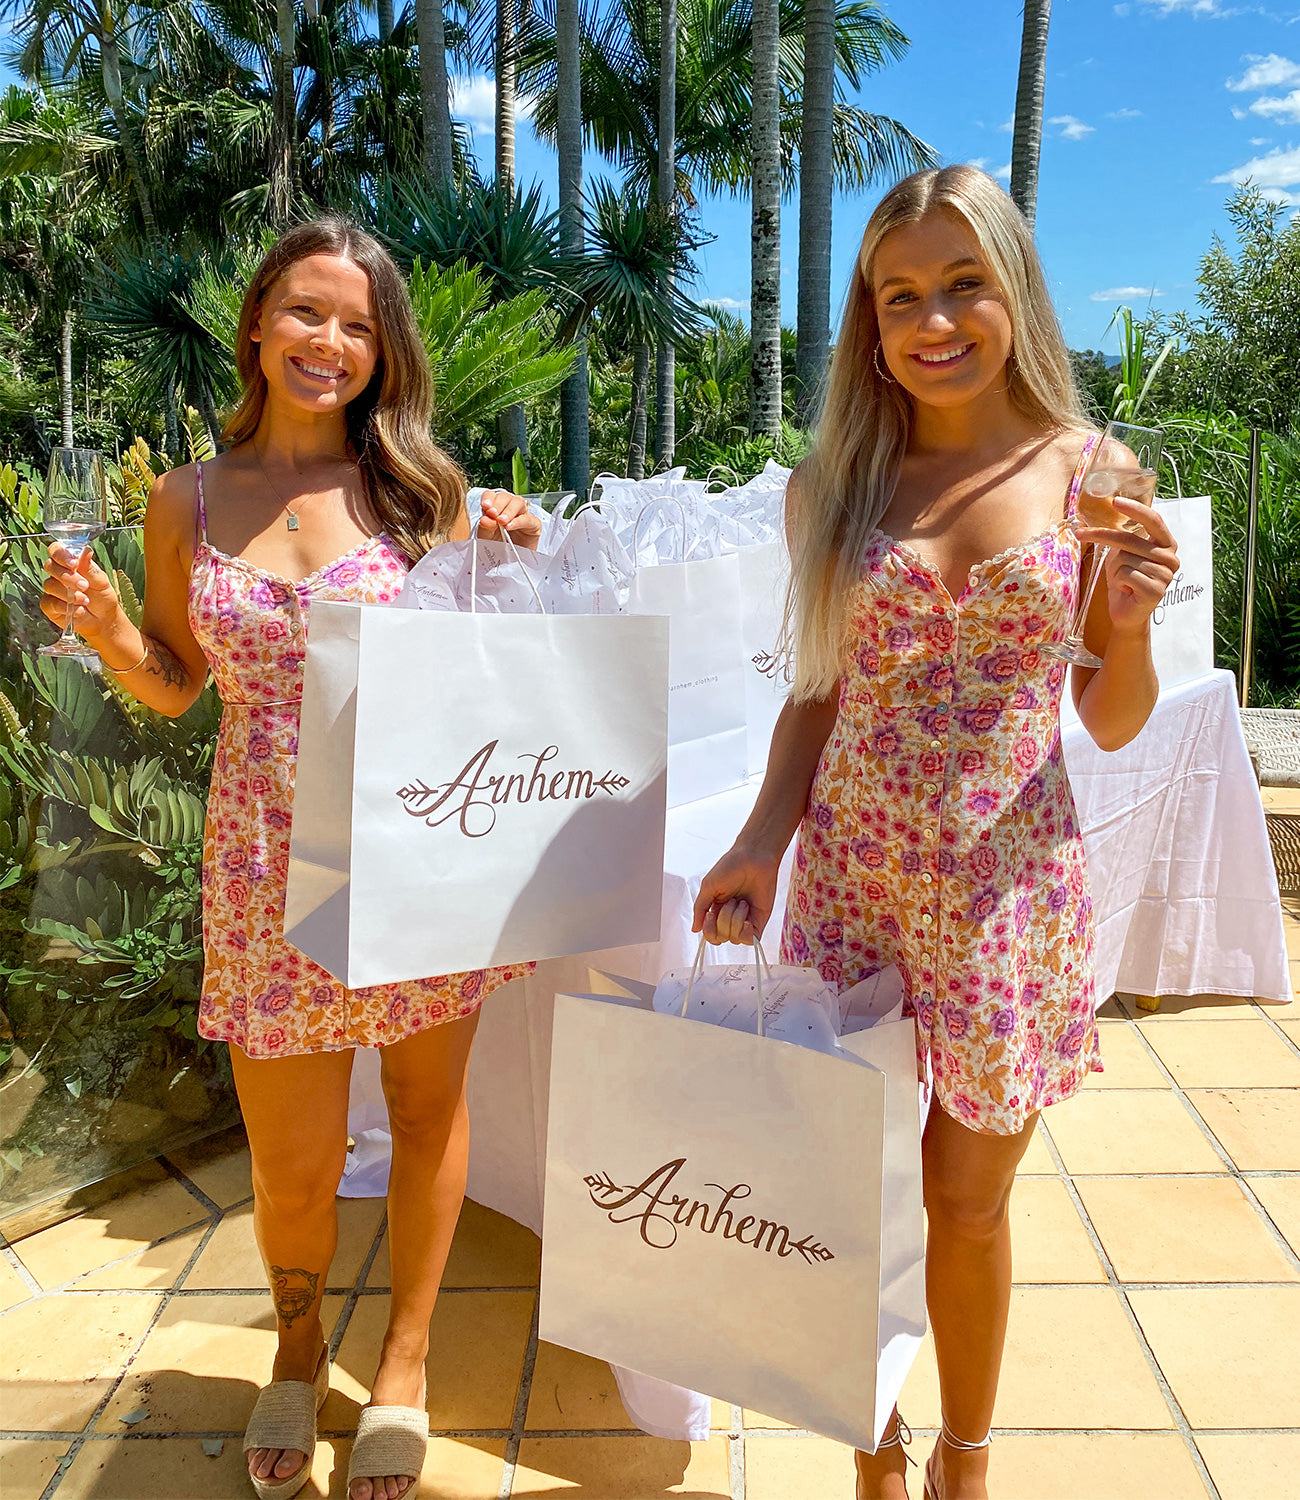 Chelsea and Teigan loving their sustainable gift bags from Arnhem